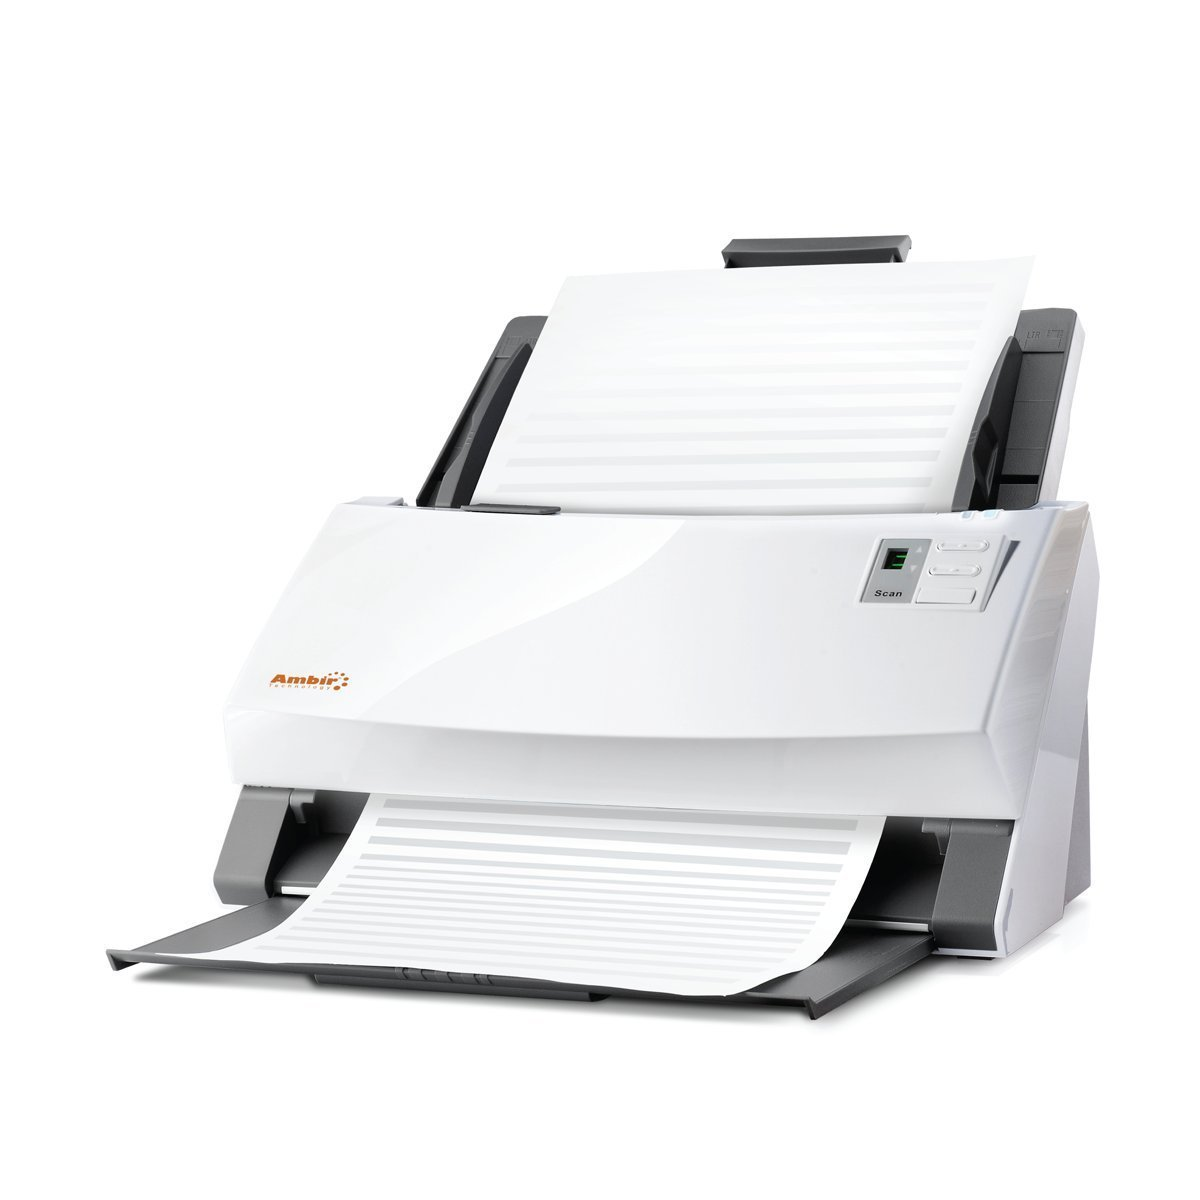 Cheap Check Scanner Software, find Check Scanner Software deals on